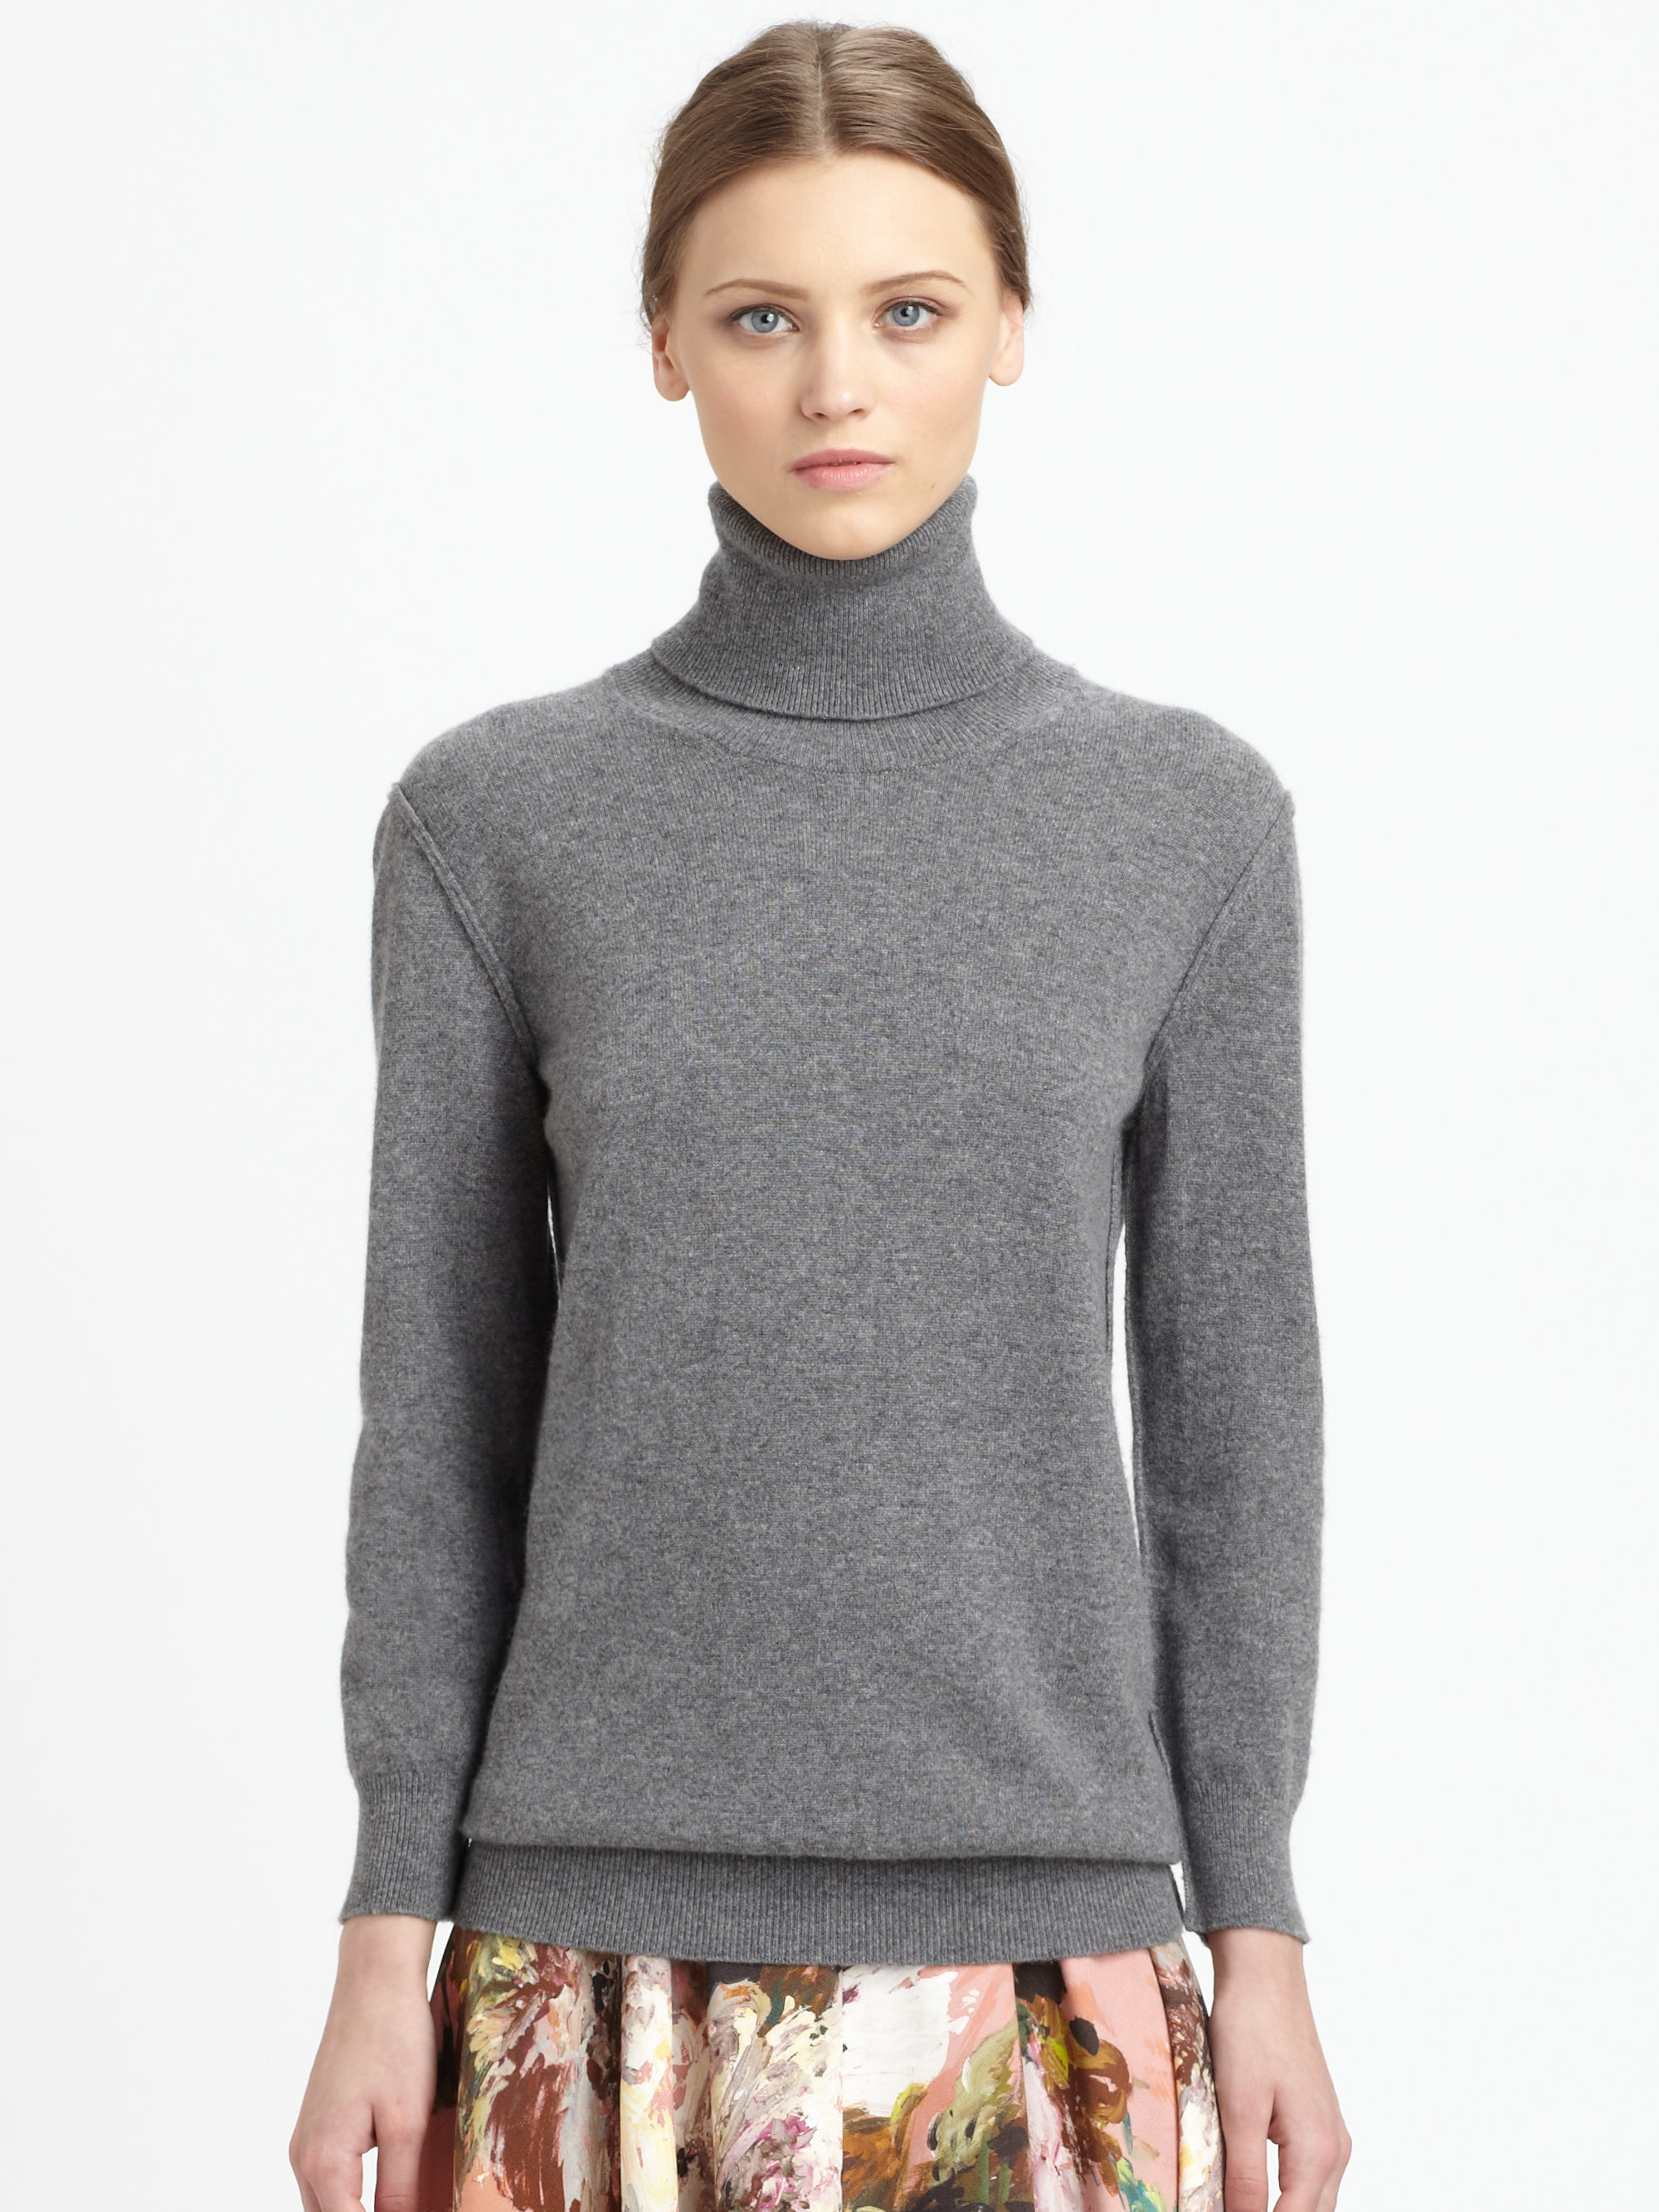 Dolce & gabbana Cashmere Turtleneck Sweater in Gray | Lyst